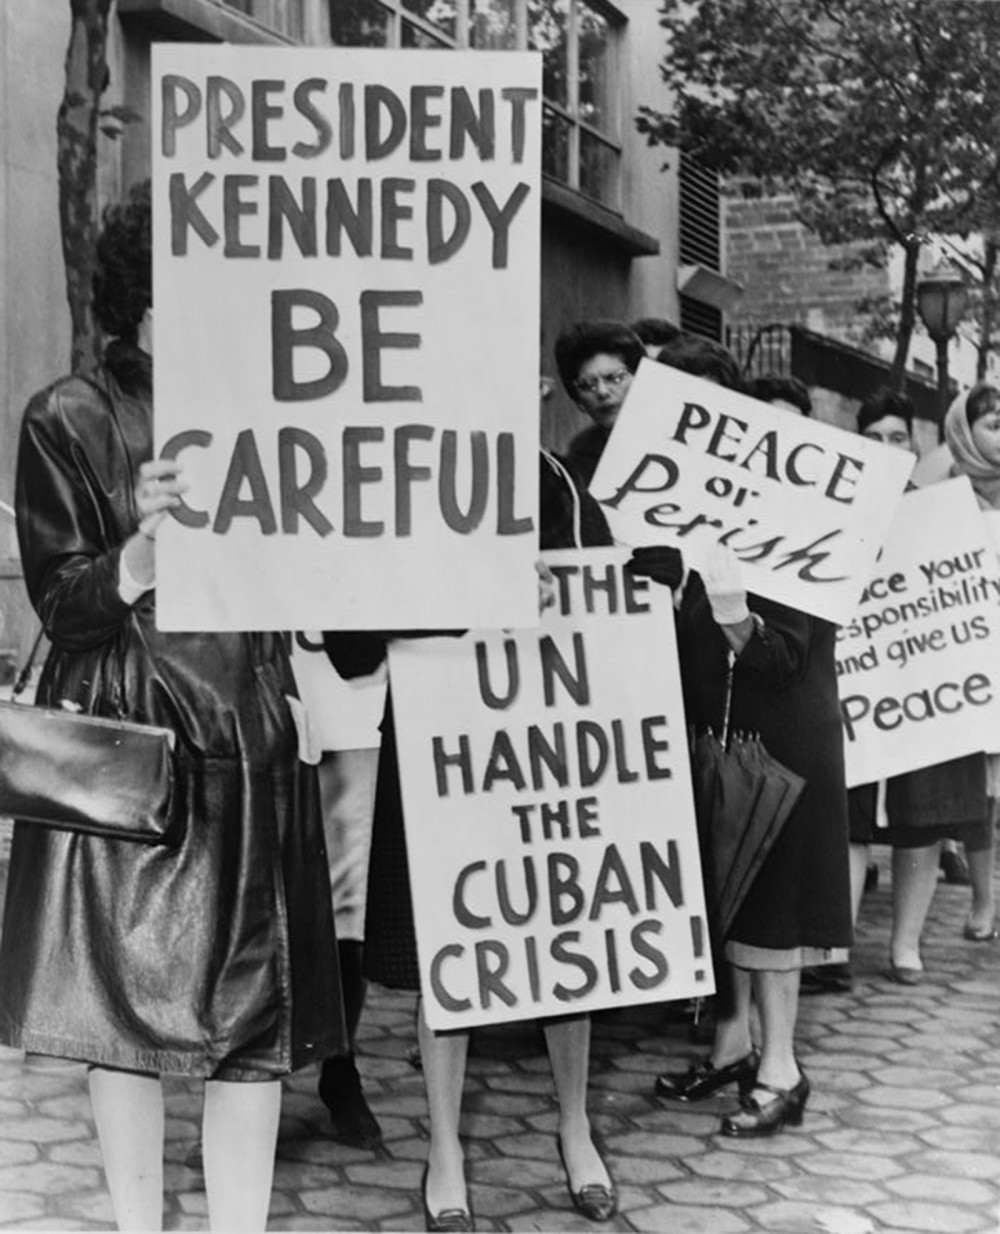 "The Cuban Missile Crisis was a time of great fear throughout America. Women in this photograph urged President Kennedy to be cautious of instigating war. Phil Stanziola, ""800 women strikers for peace on 47 St near the UN Bldg,"" 1962. Library of Congress, http://www.loc.gov/pictures/item/2001696167/."